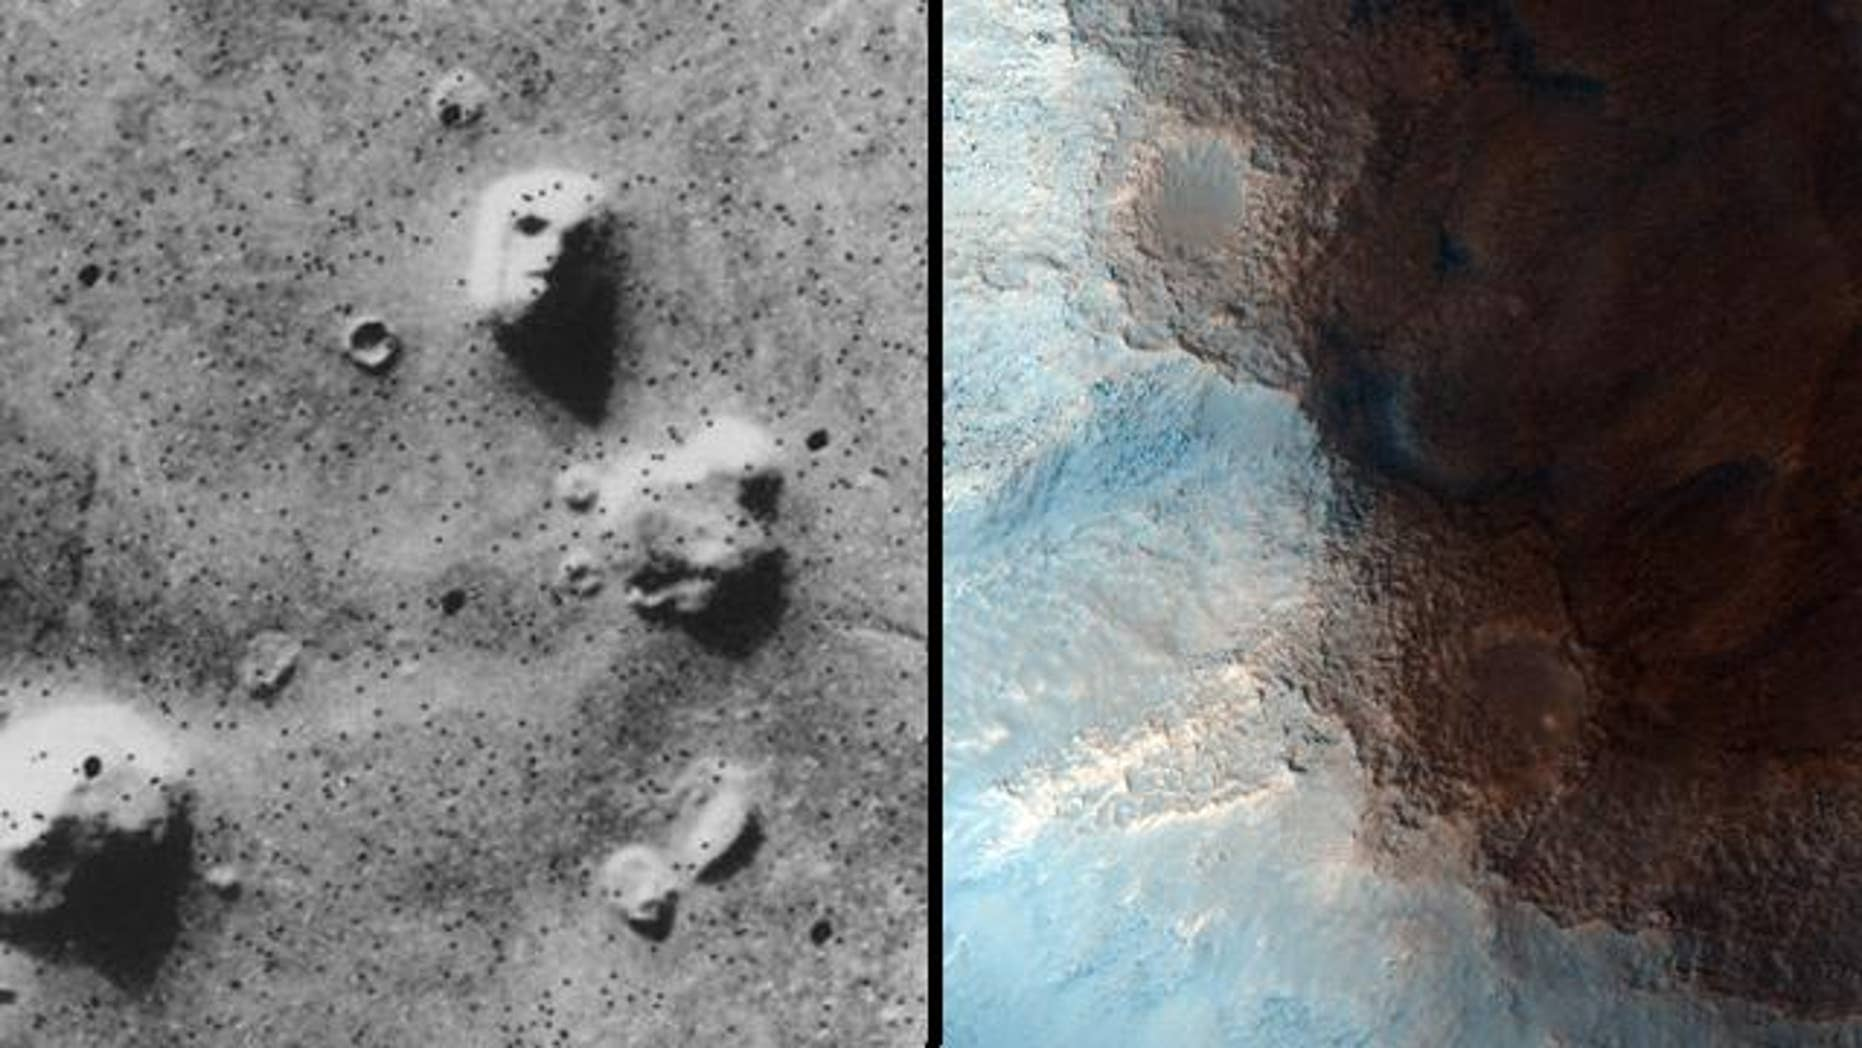 At left, the famous 1976 image from Viking that seems to show a face. On the right, a new image of the same rock surface. Taken from much closer and in higher resolution, the features completely disappear.